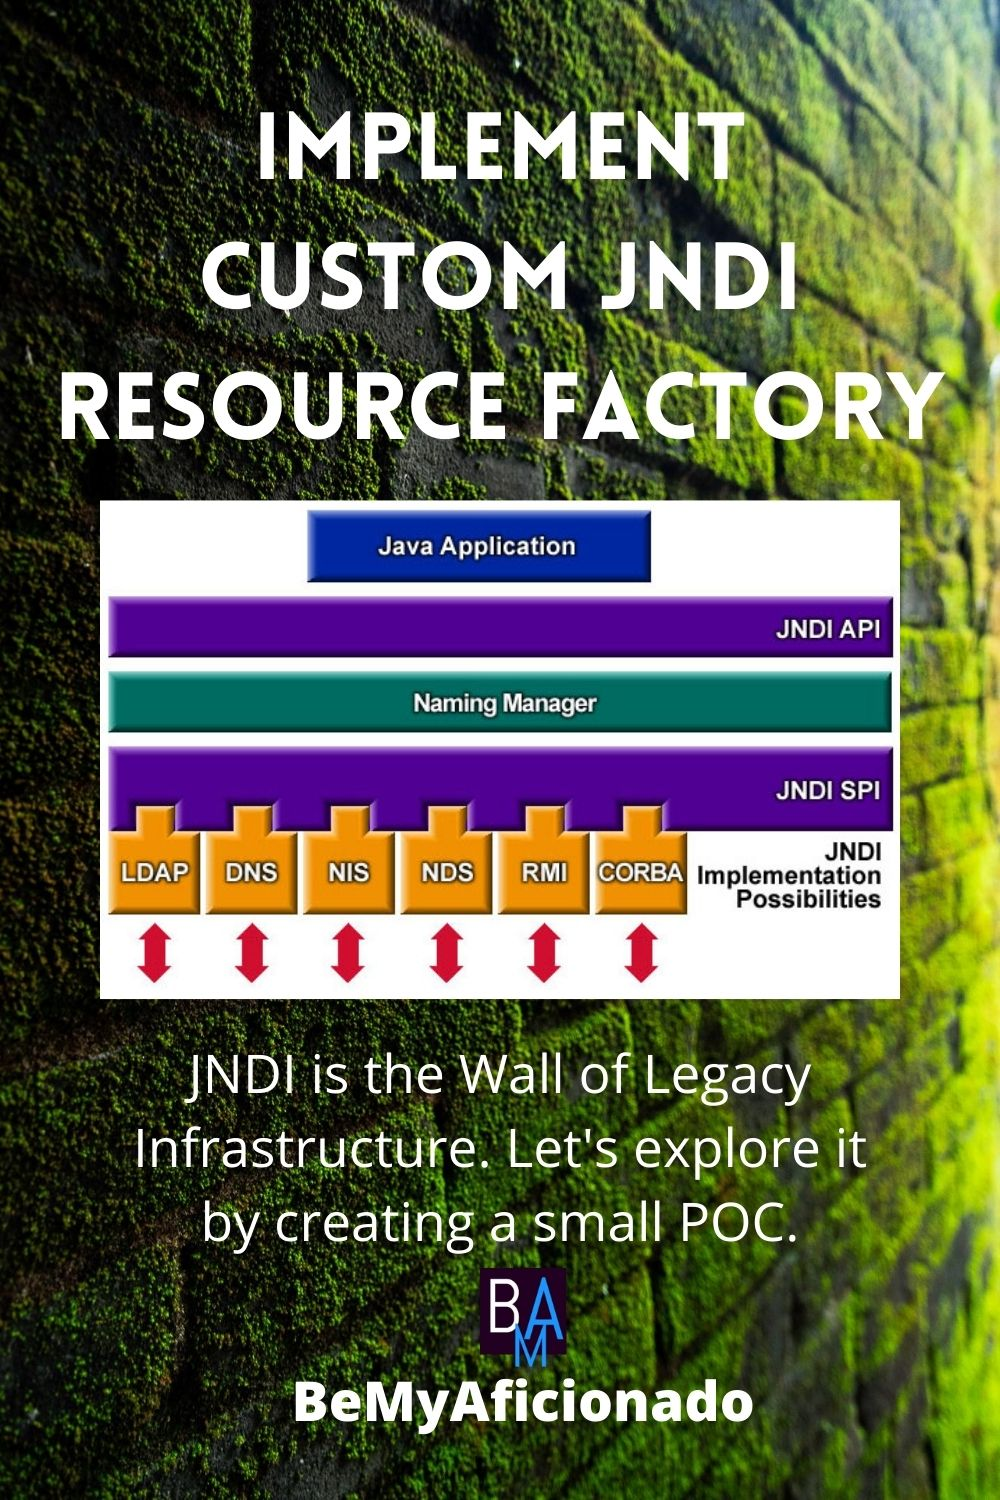 Implement Custom JNDI Resource Factory